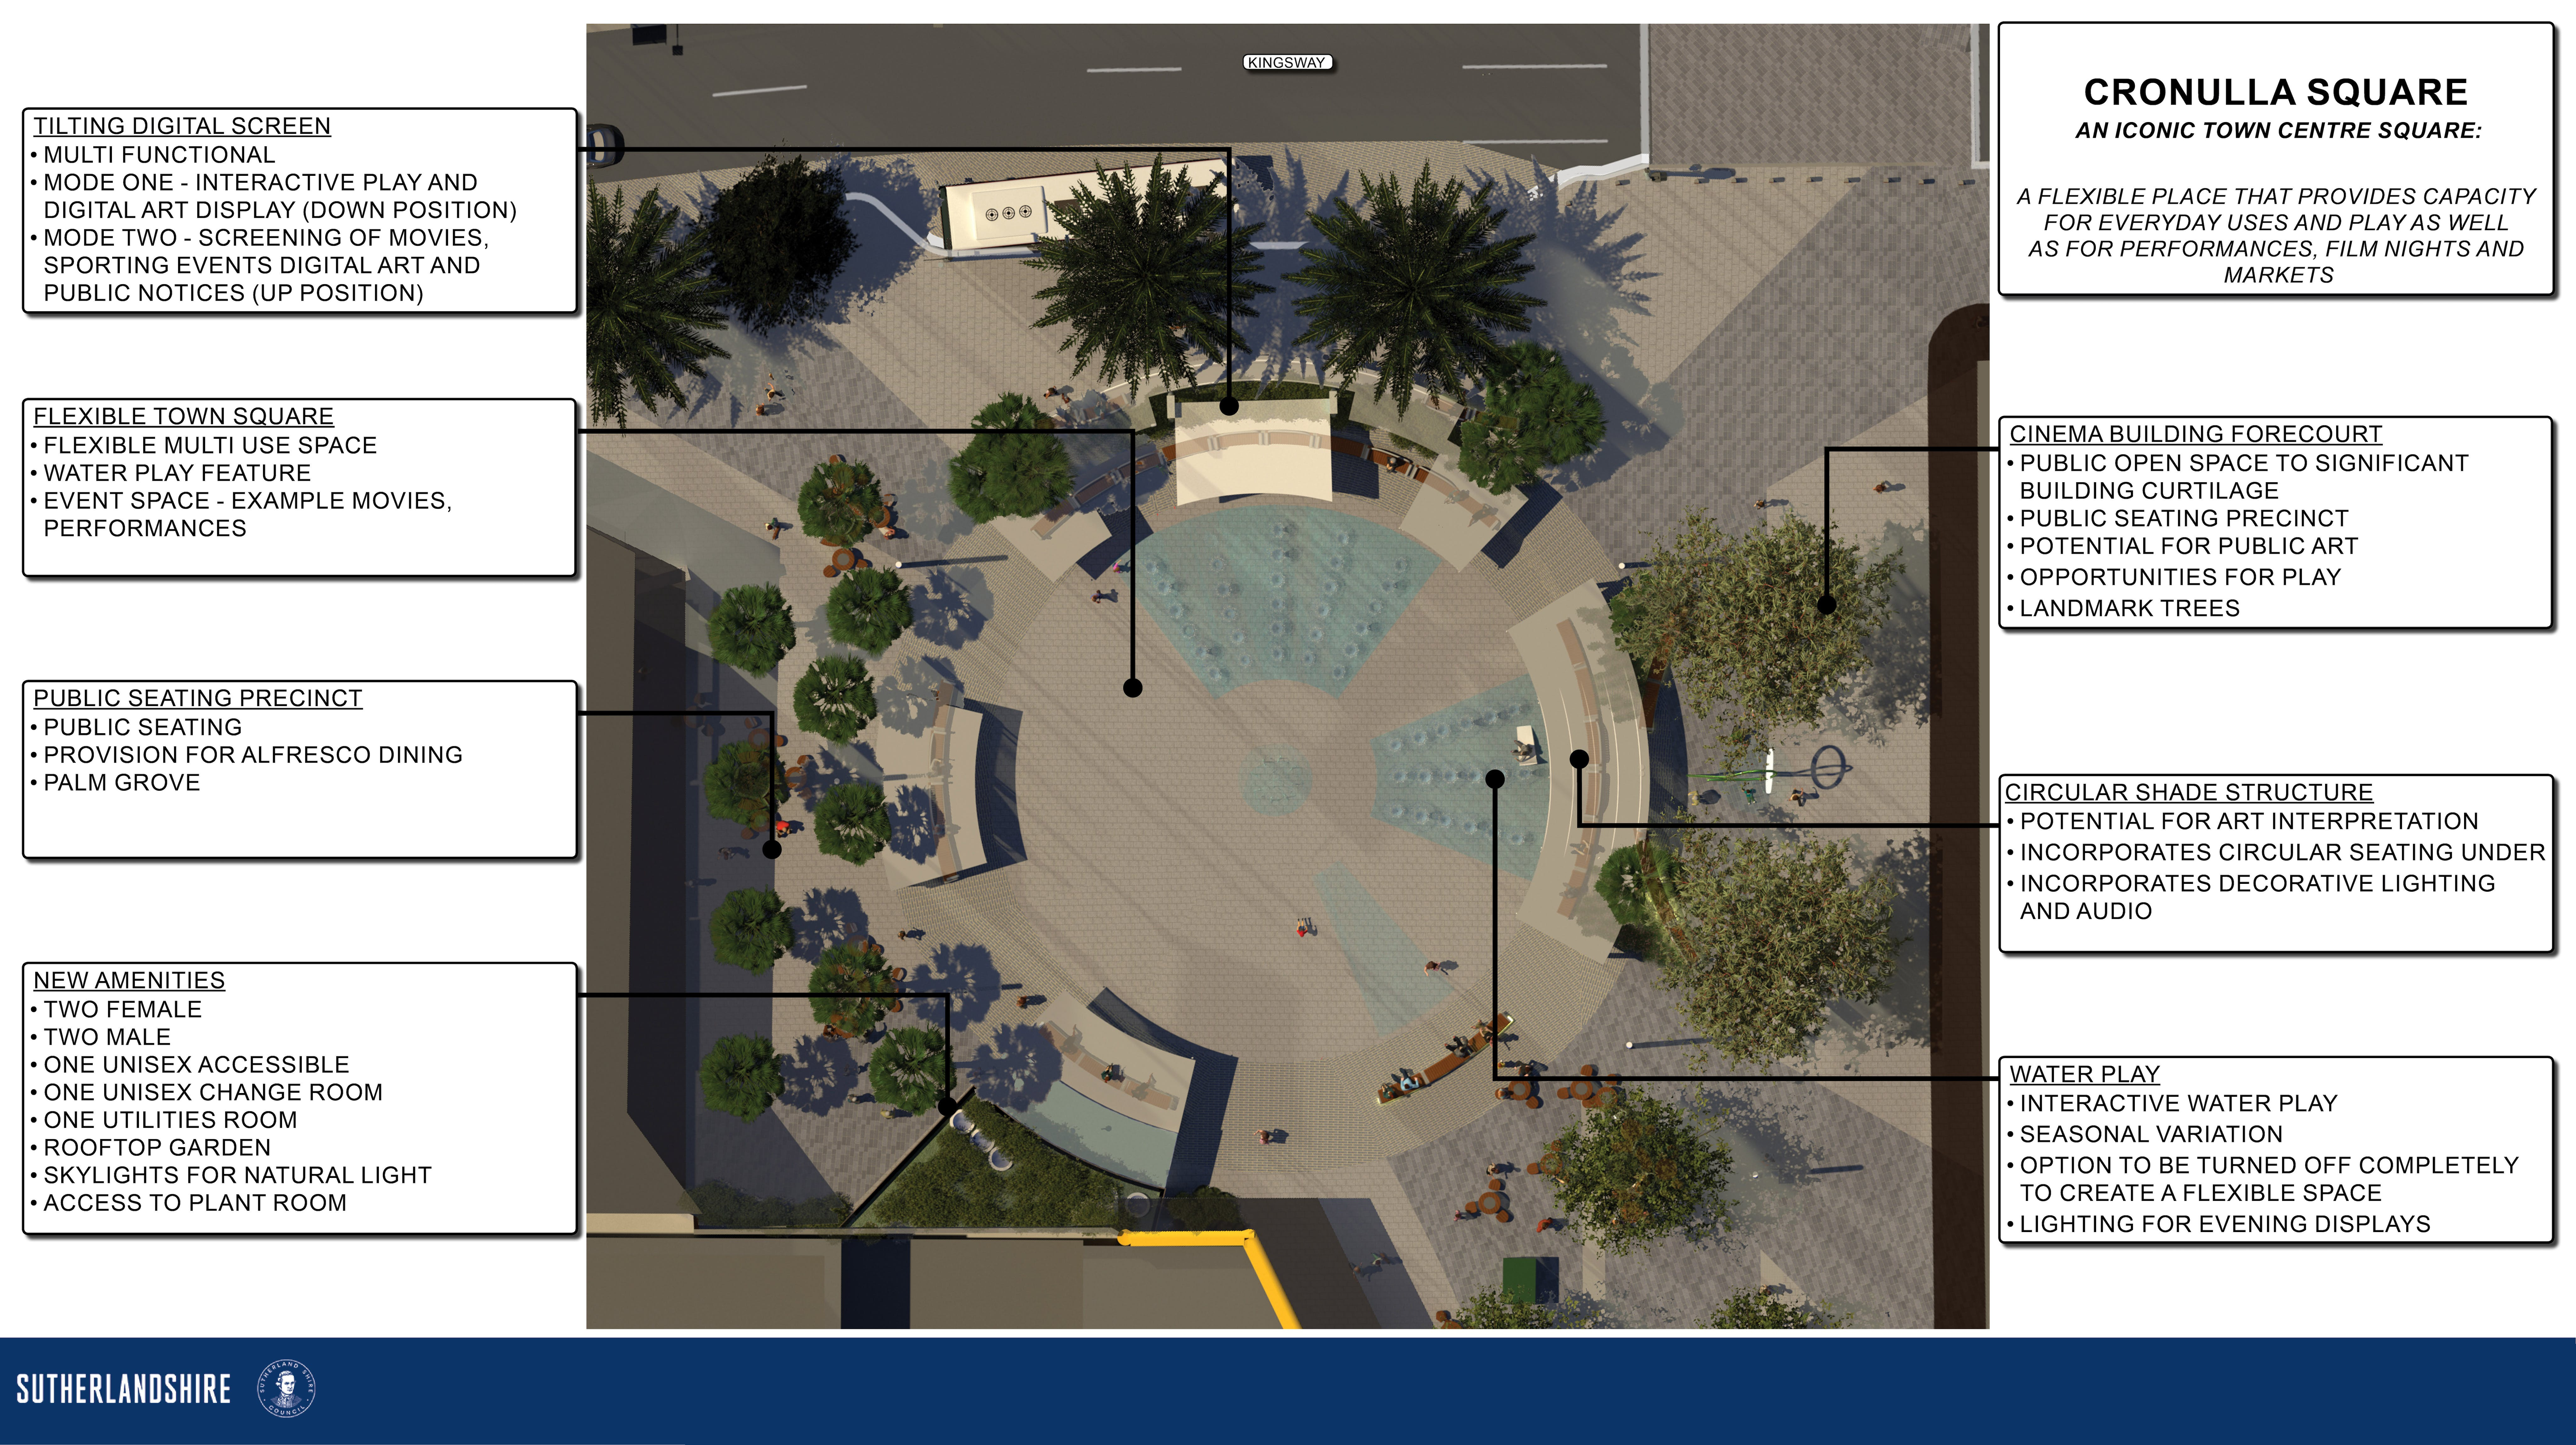 CRONULLA SQUARE DRAFT LAYOUT PLAN